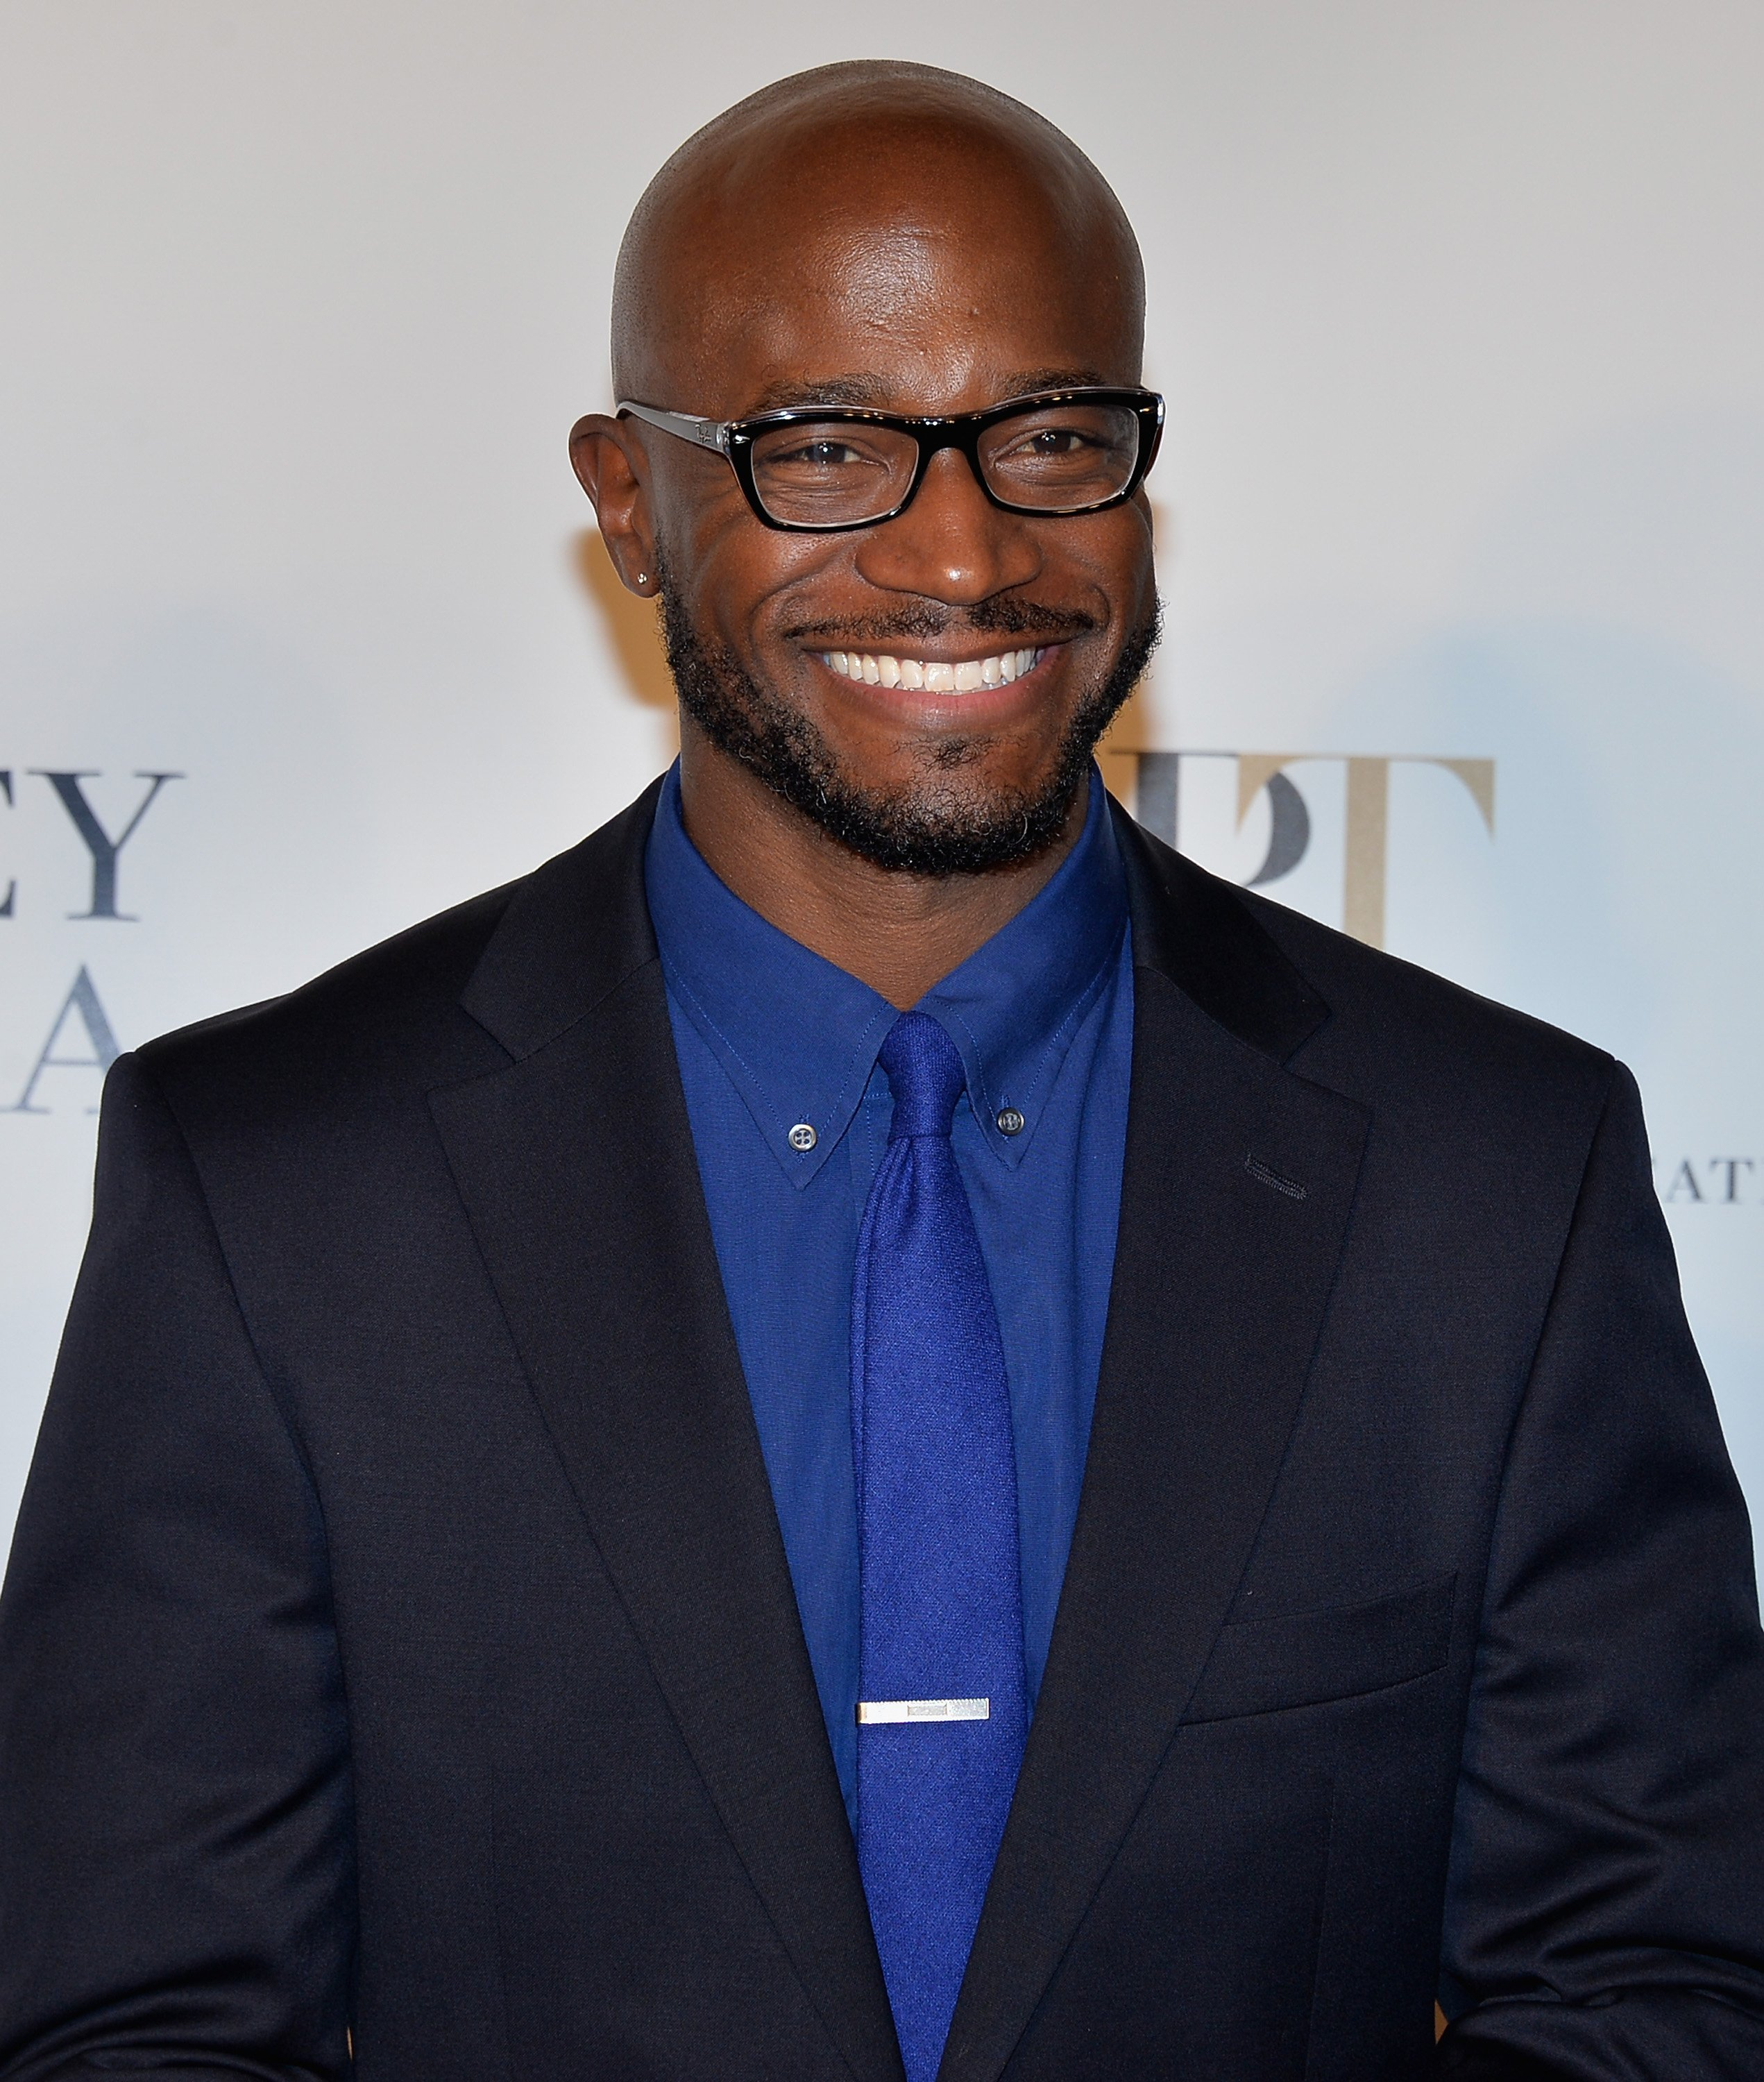 Taye Diggs attends the American Ballet Theatre 2013 opening night fall gala on October 30, 2013, in New York City. | Source: Getty Images.